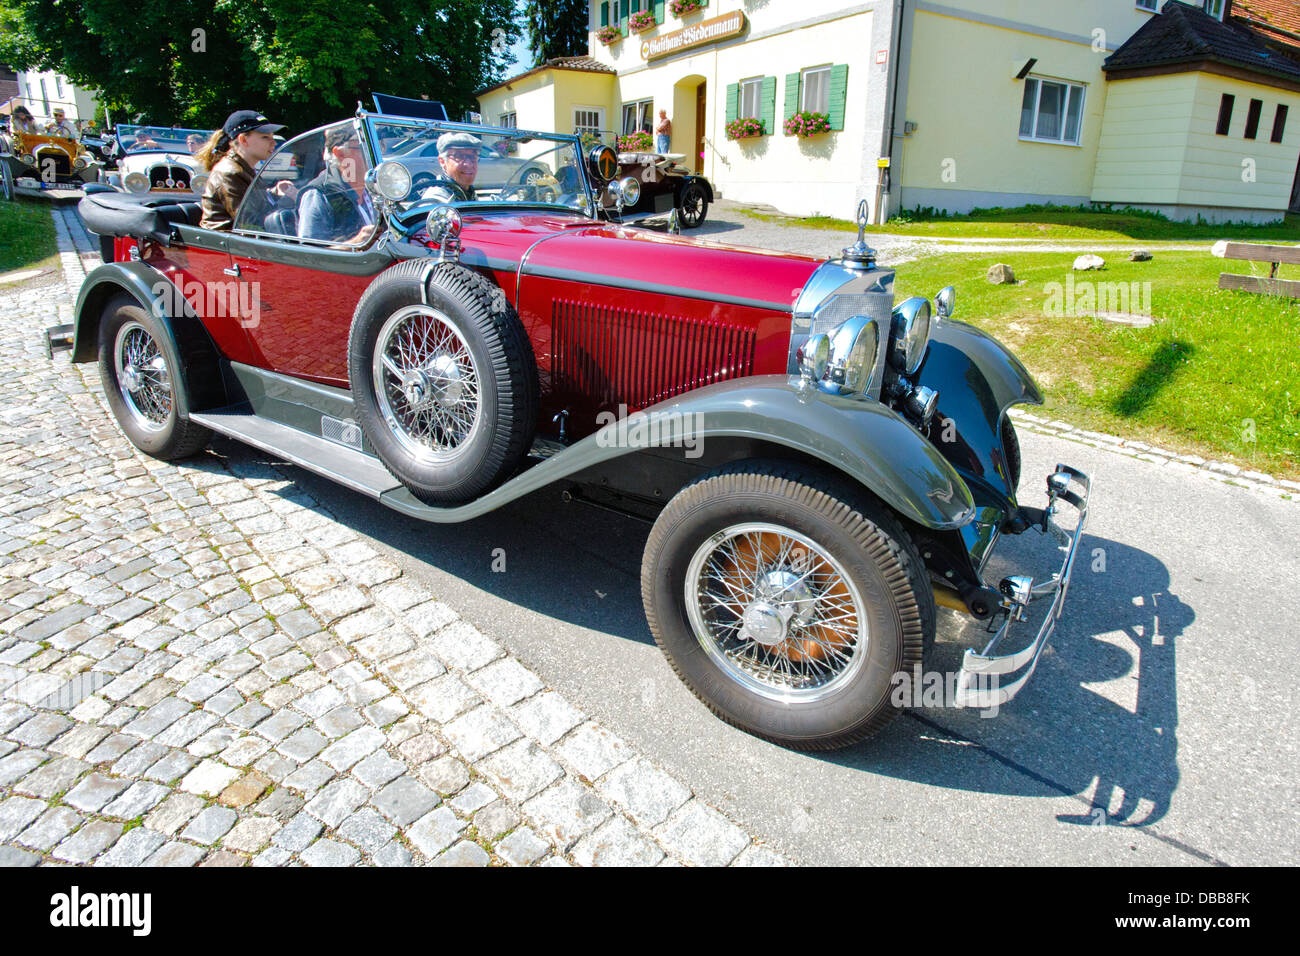 Oldtimer Rallye For At Least Years Old Antique Cars With